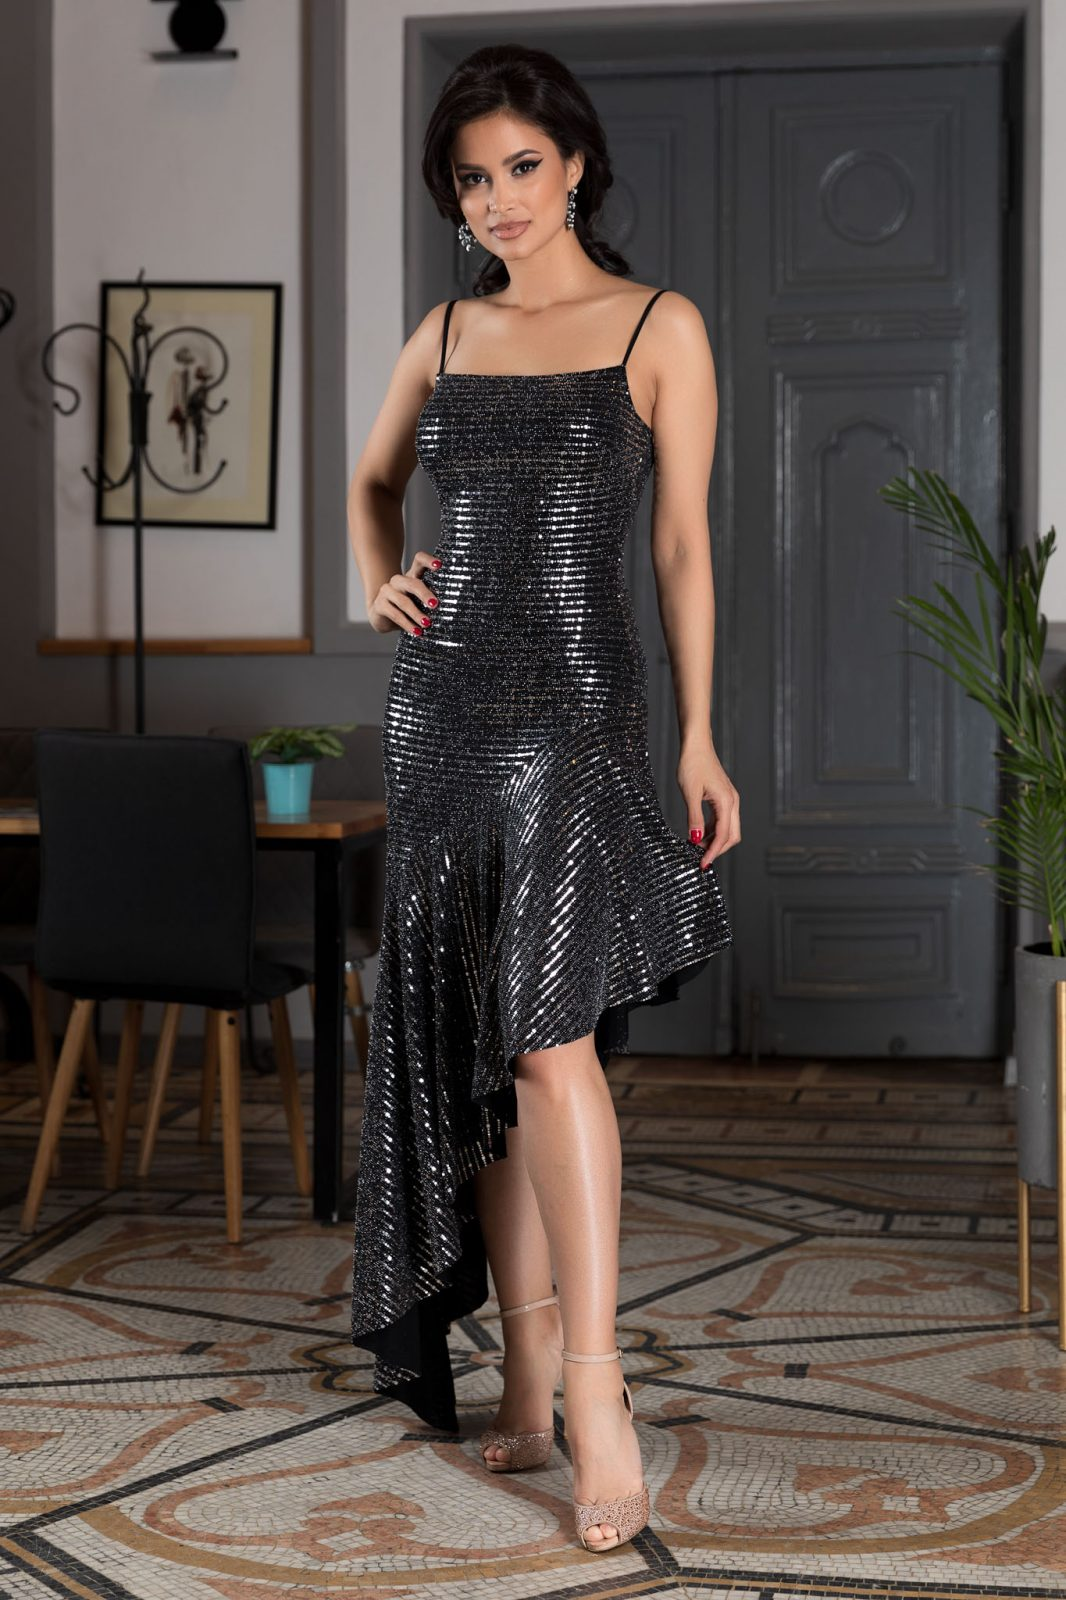 Galatea Silver Dress